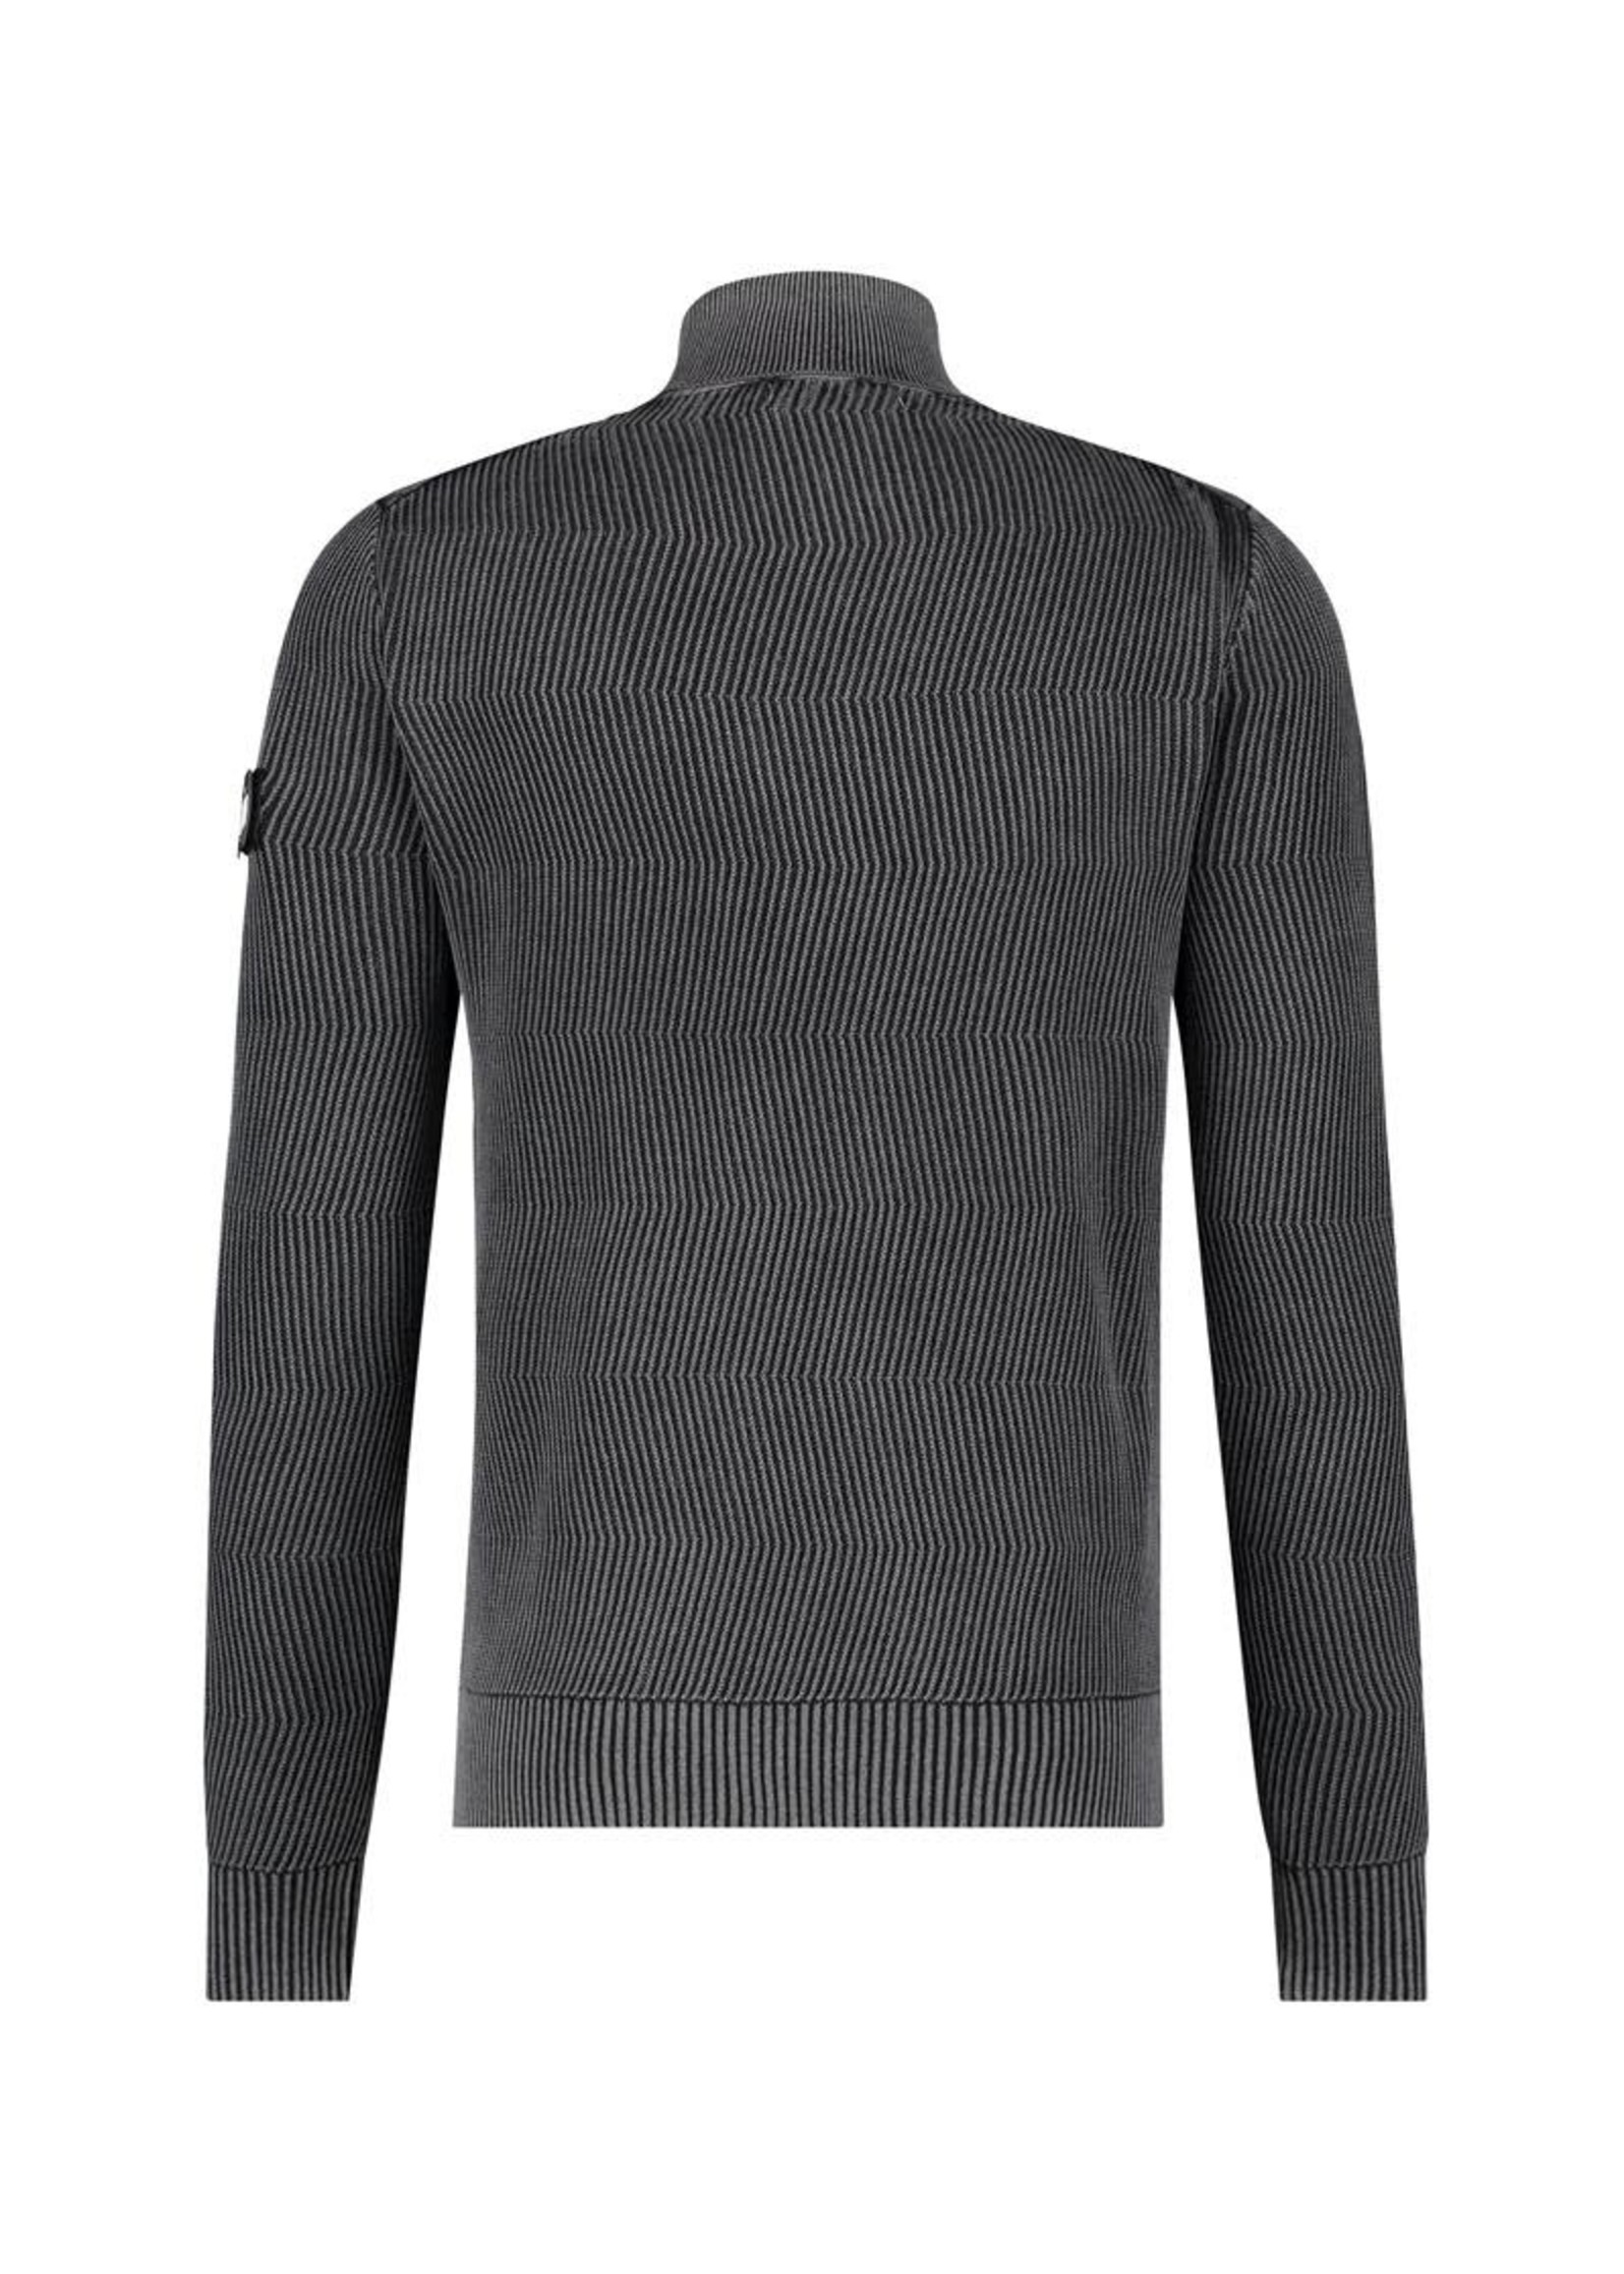 Purewhite Sweater Jacquard Knitted Turtleneck - Black